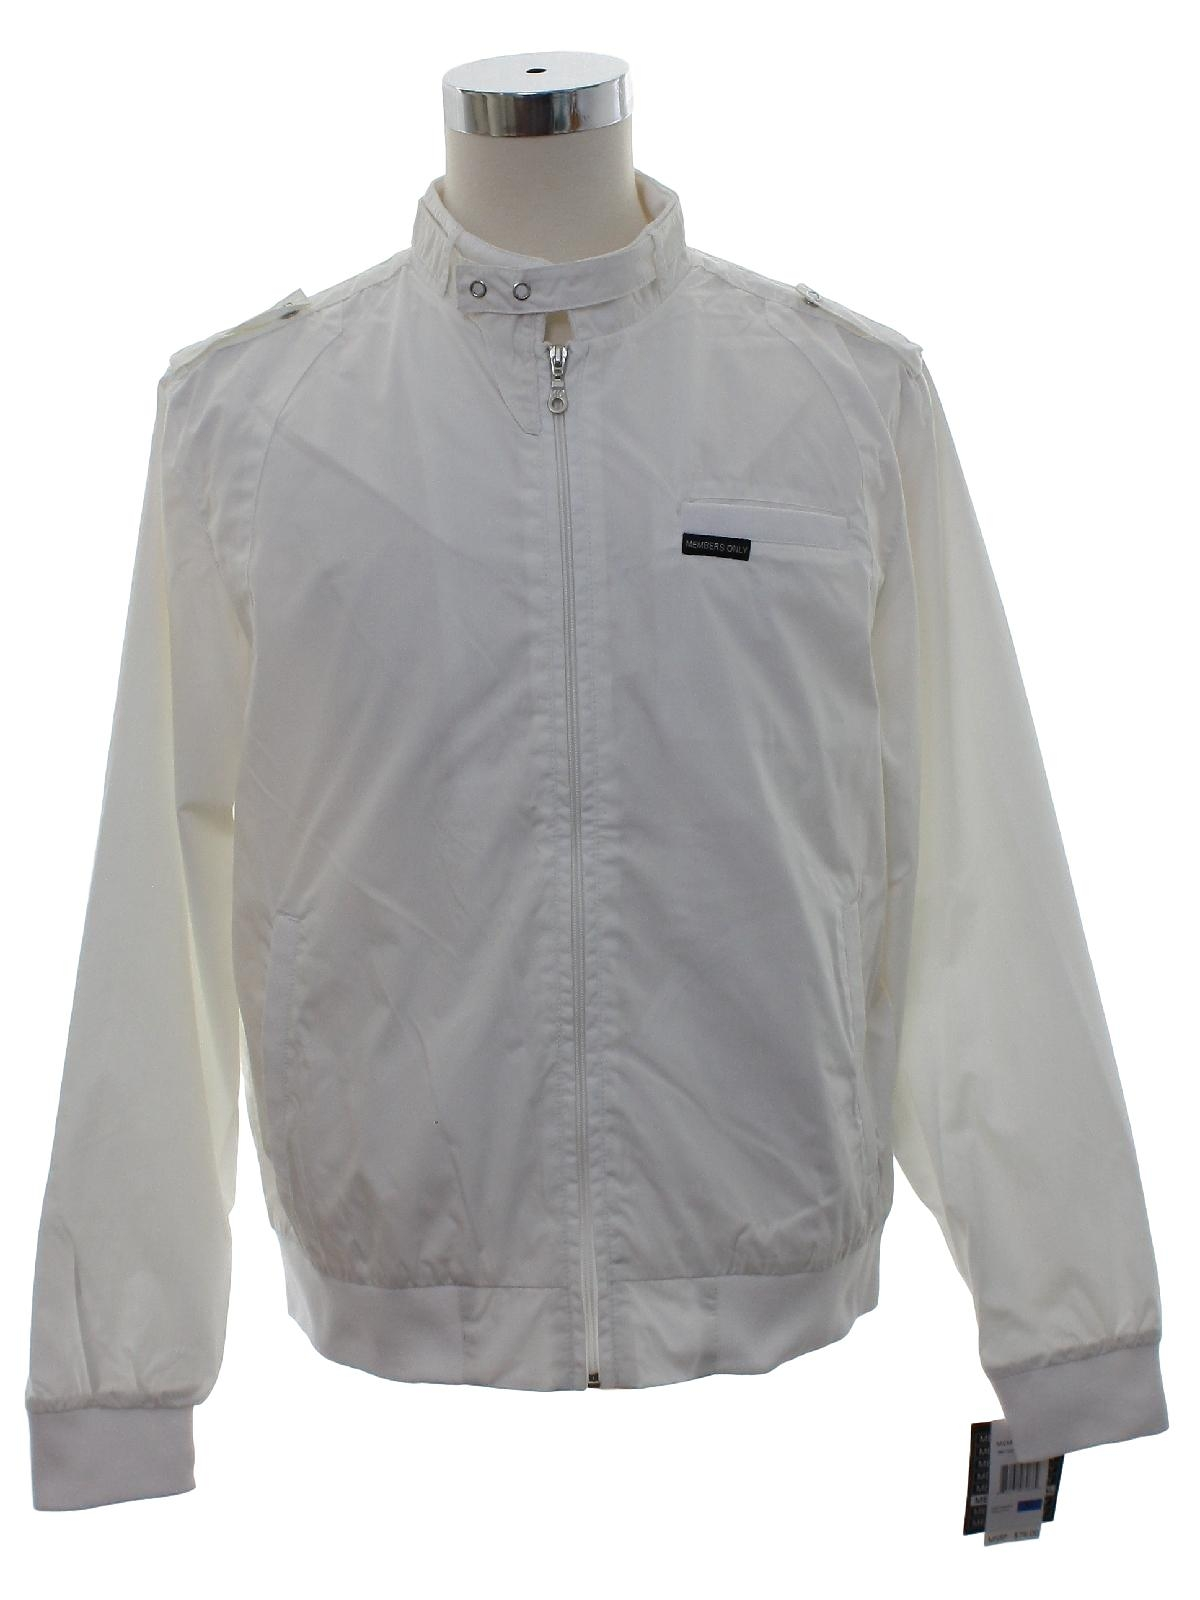 1980 S Retro Jacket 80s Style Members Only Mens White